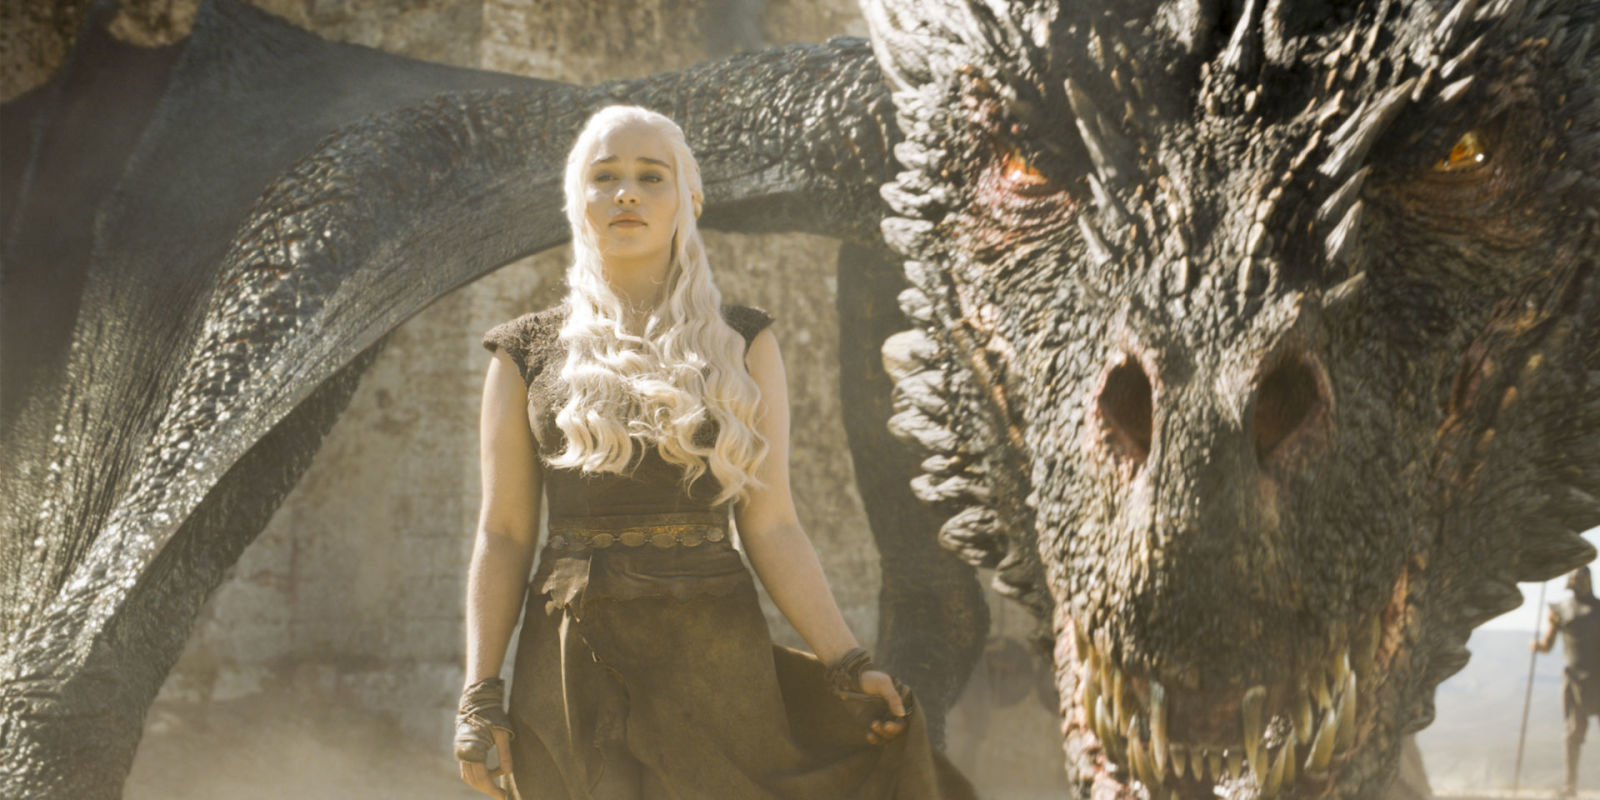 Game of Thrones – book to screen adaptation